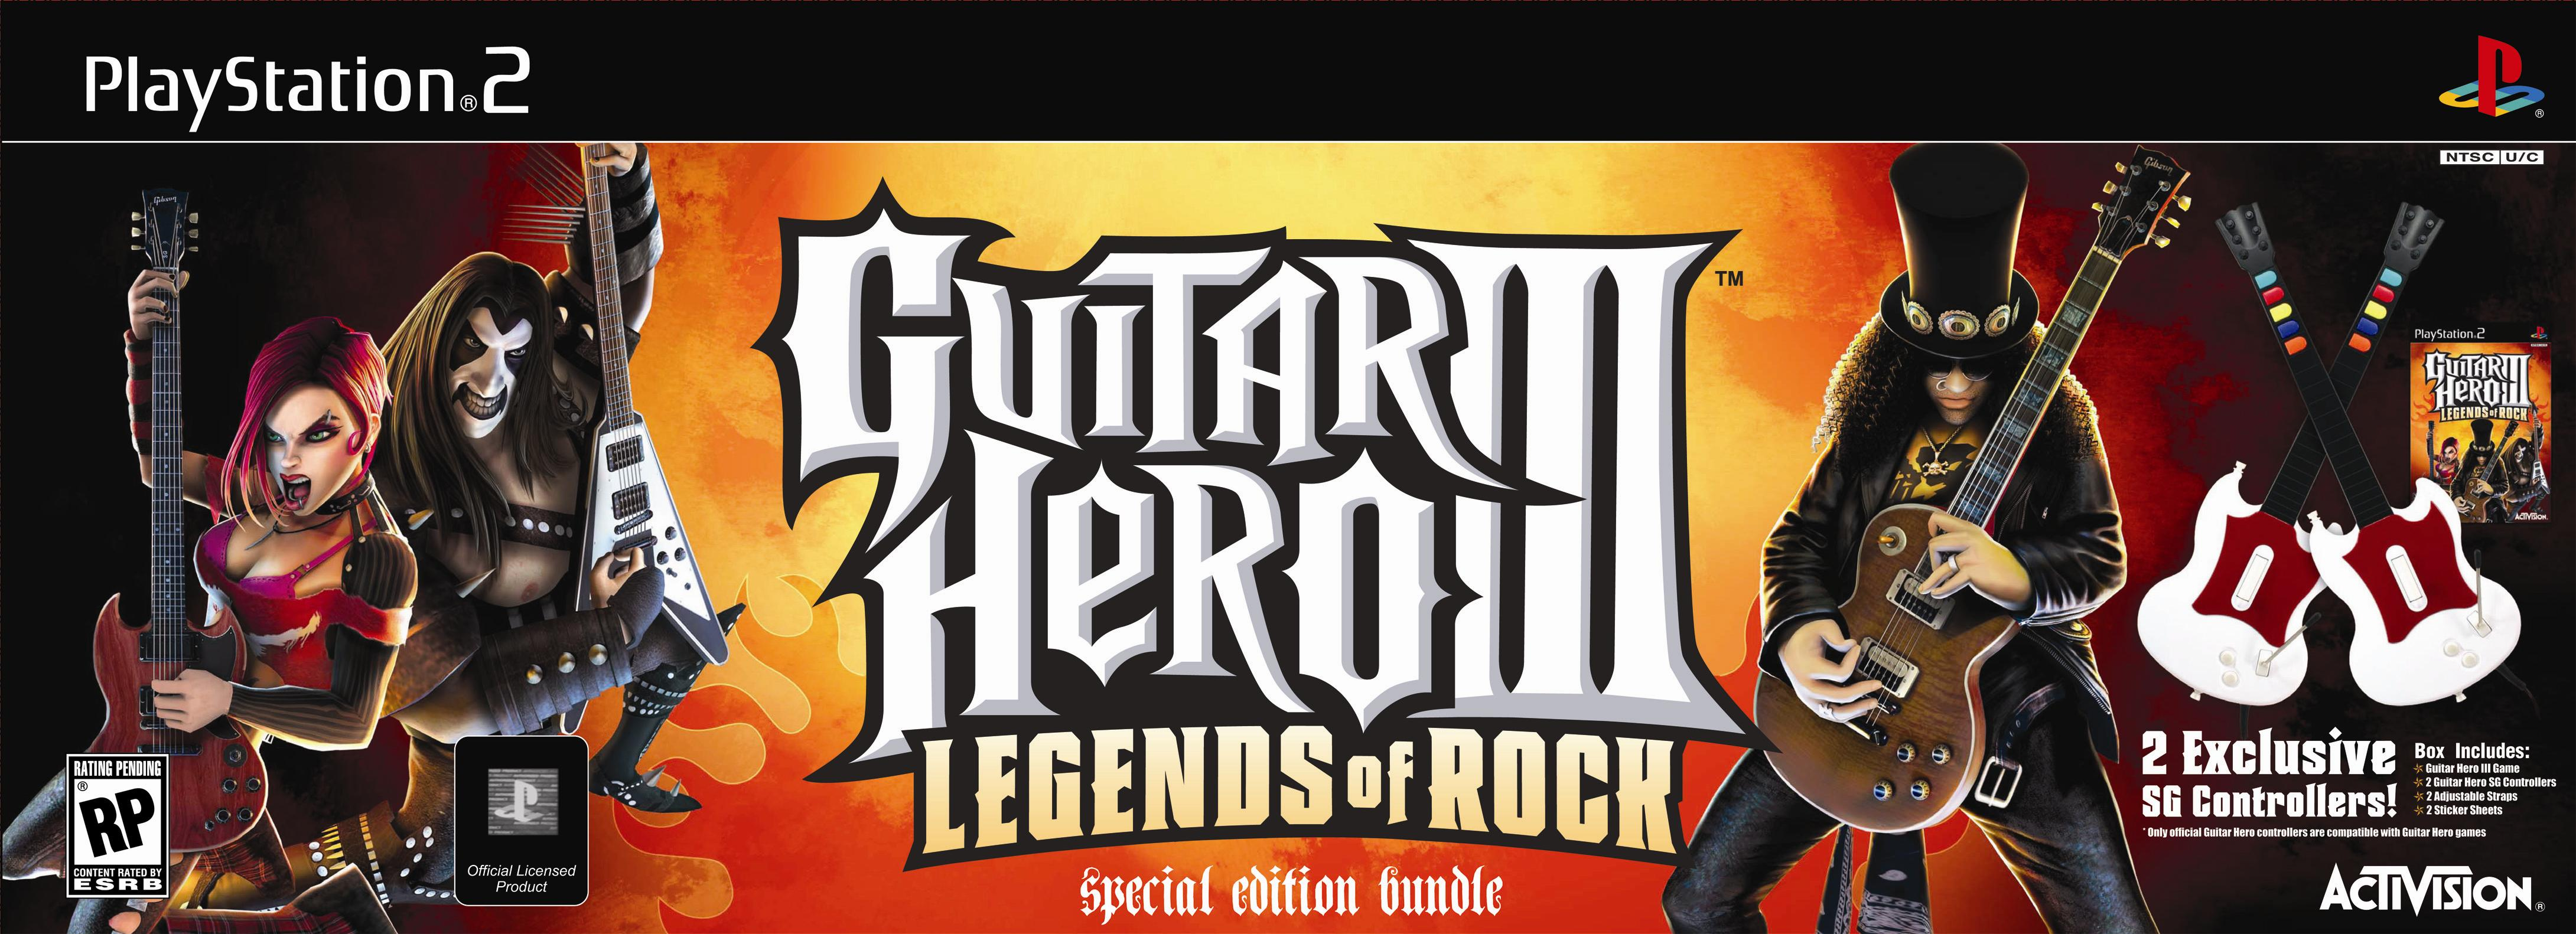 Target To Sell Exclusive Guitar Hero III Bundle Target To Sell Exclusive Guitar Hero III Bundle 2652SquallSnake7